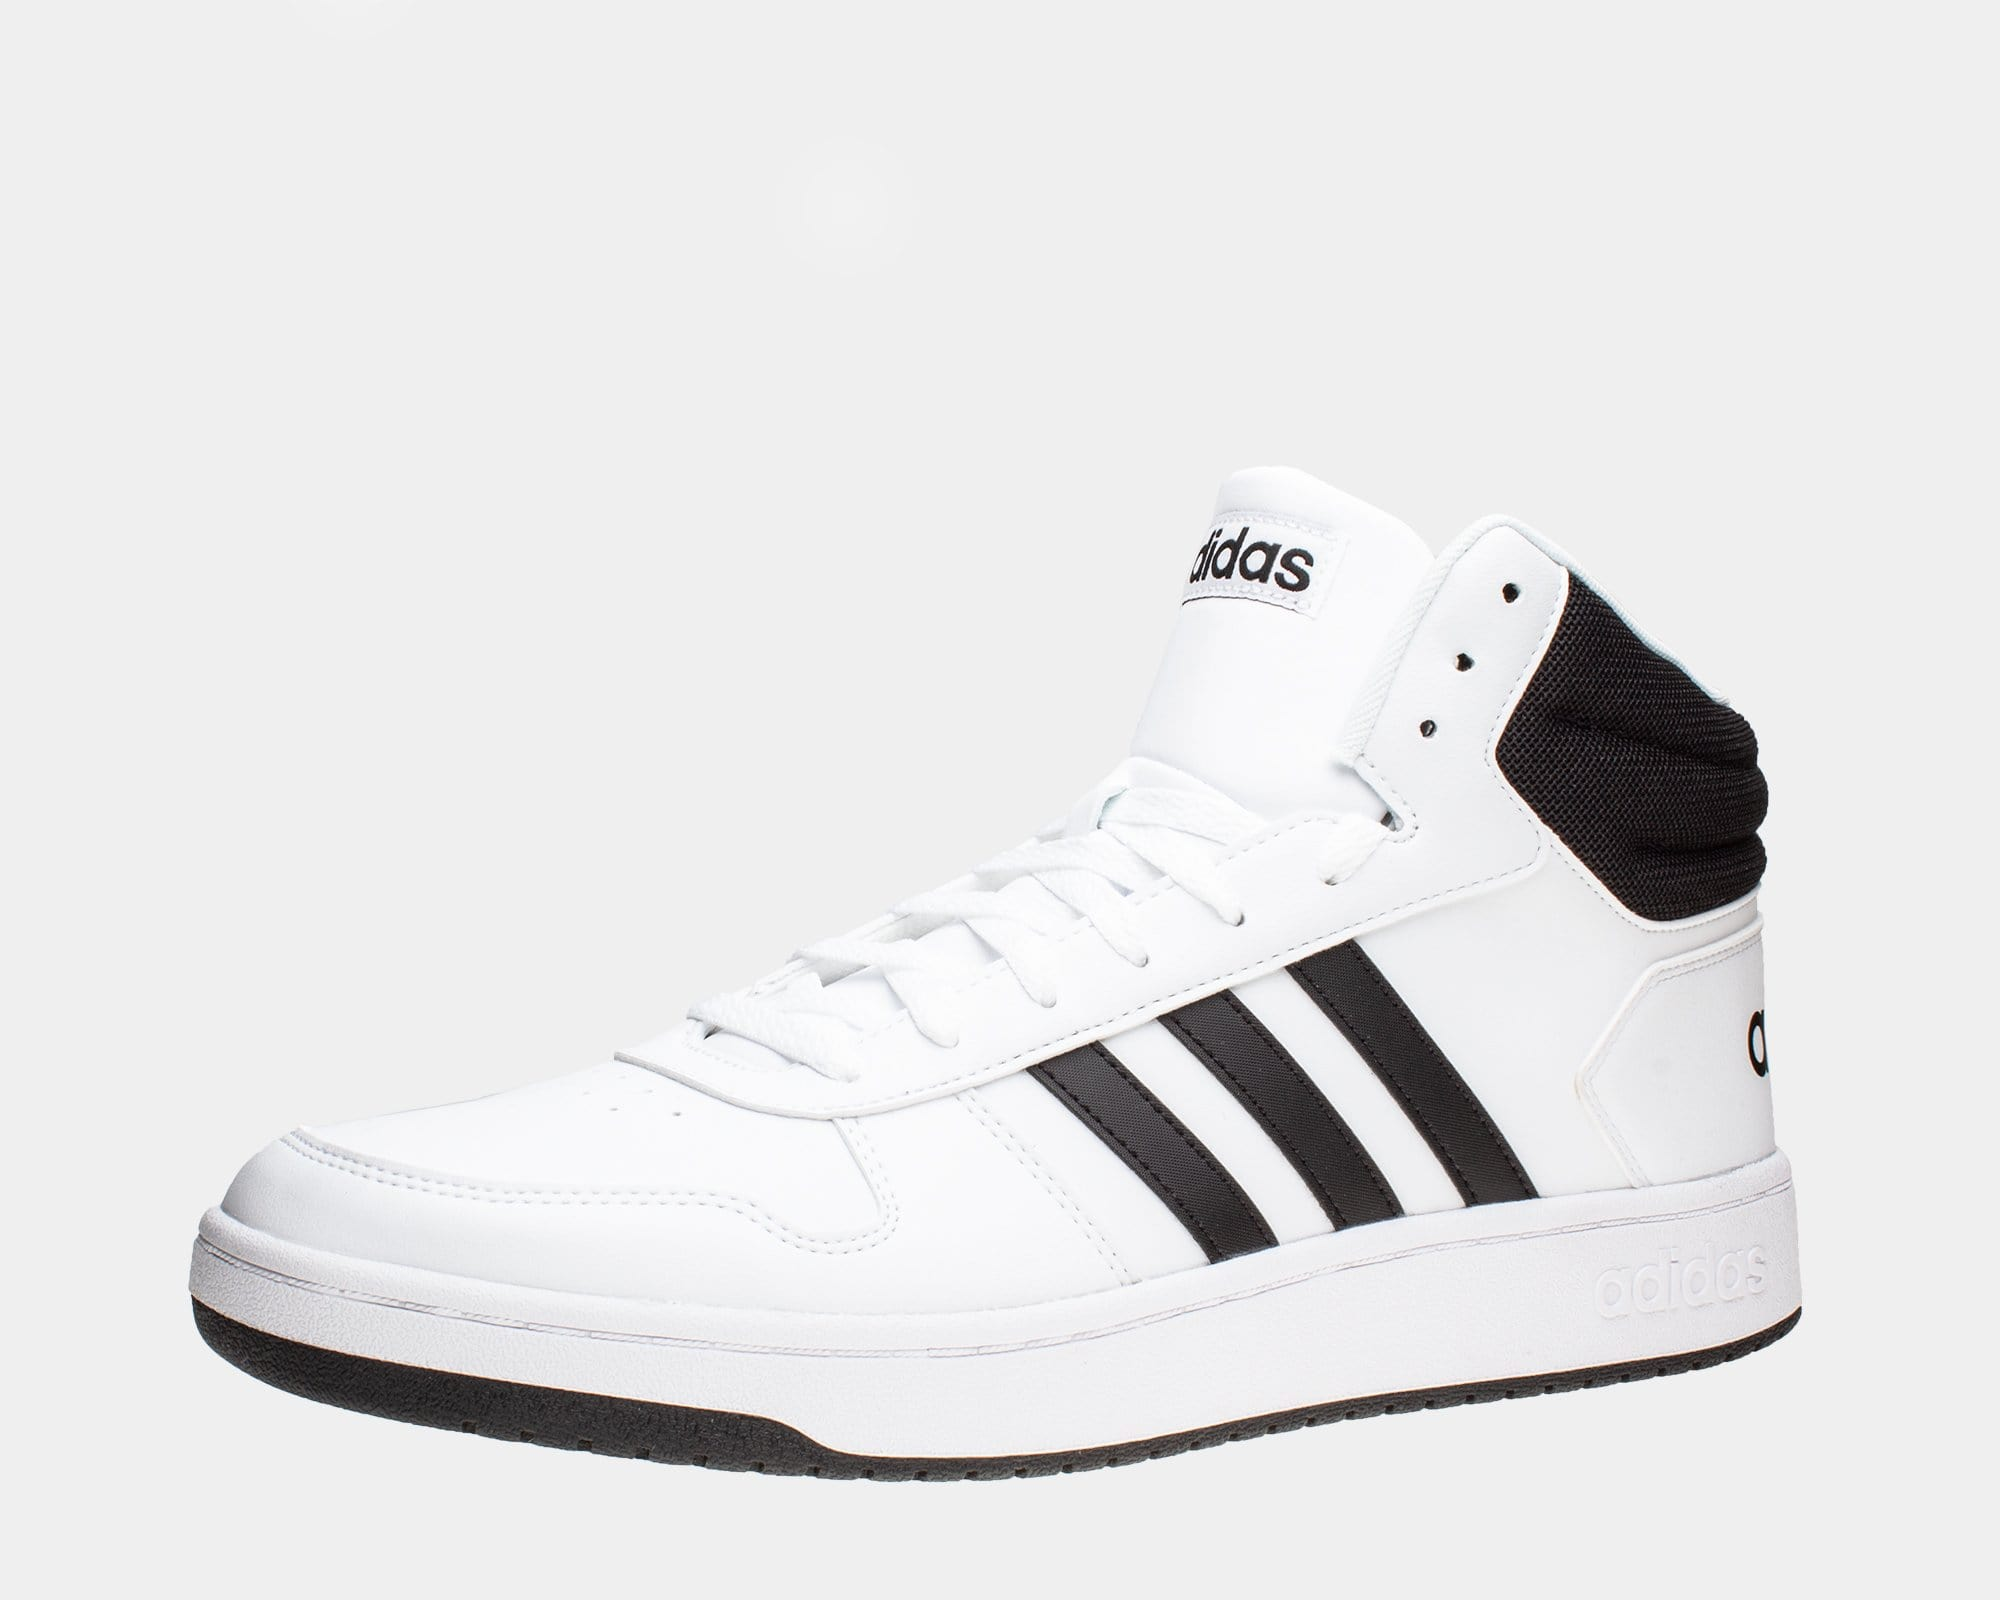 huge selection of d6ac0 c868b adidas Hoops 2.0 Mid Sneakers - Mens Large Sizes